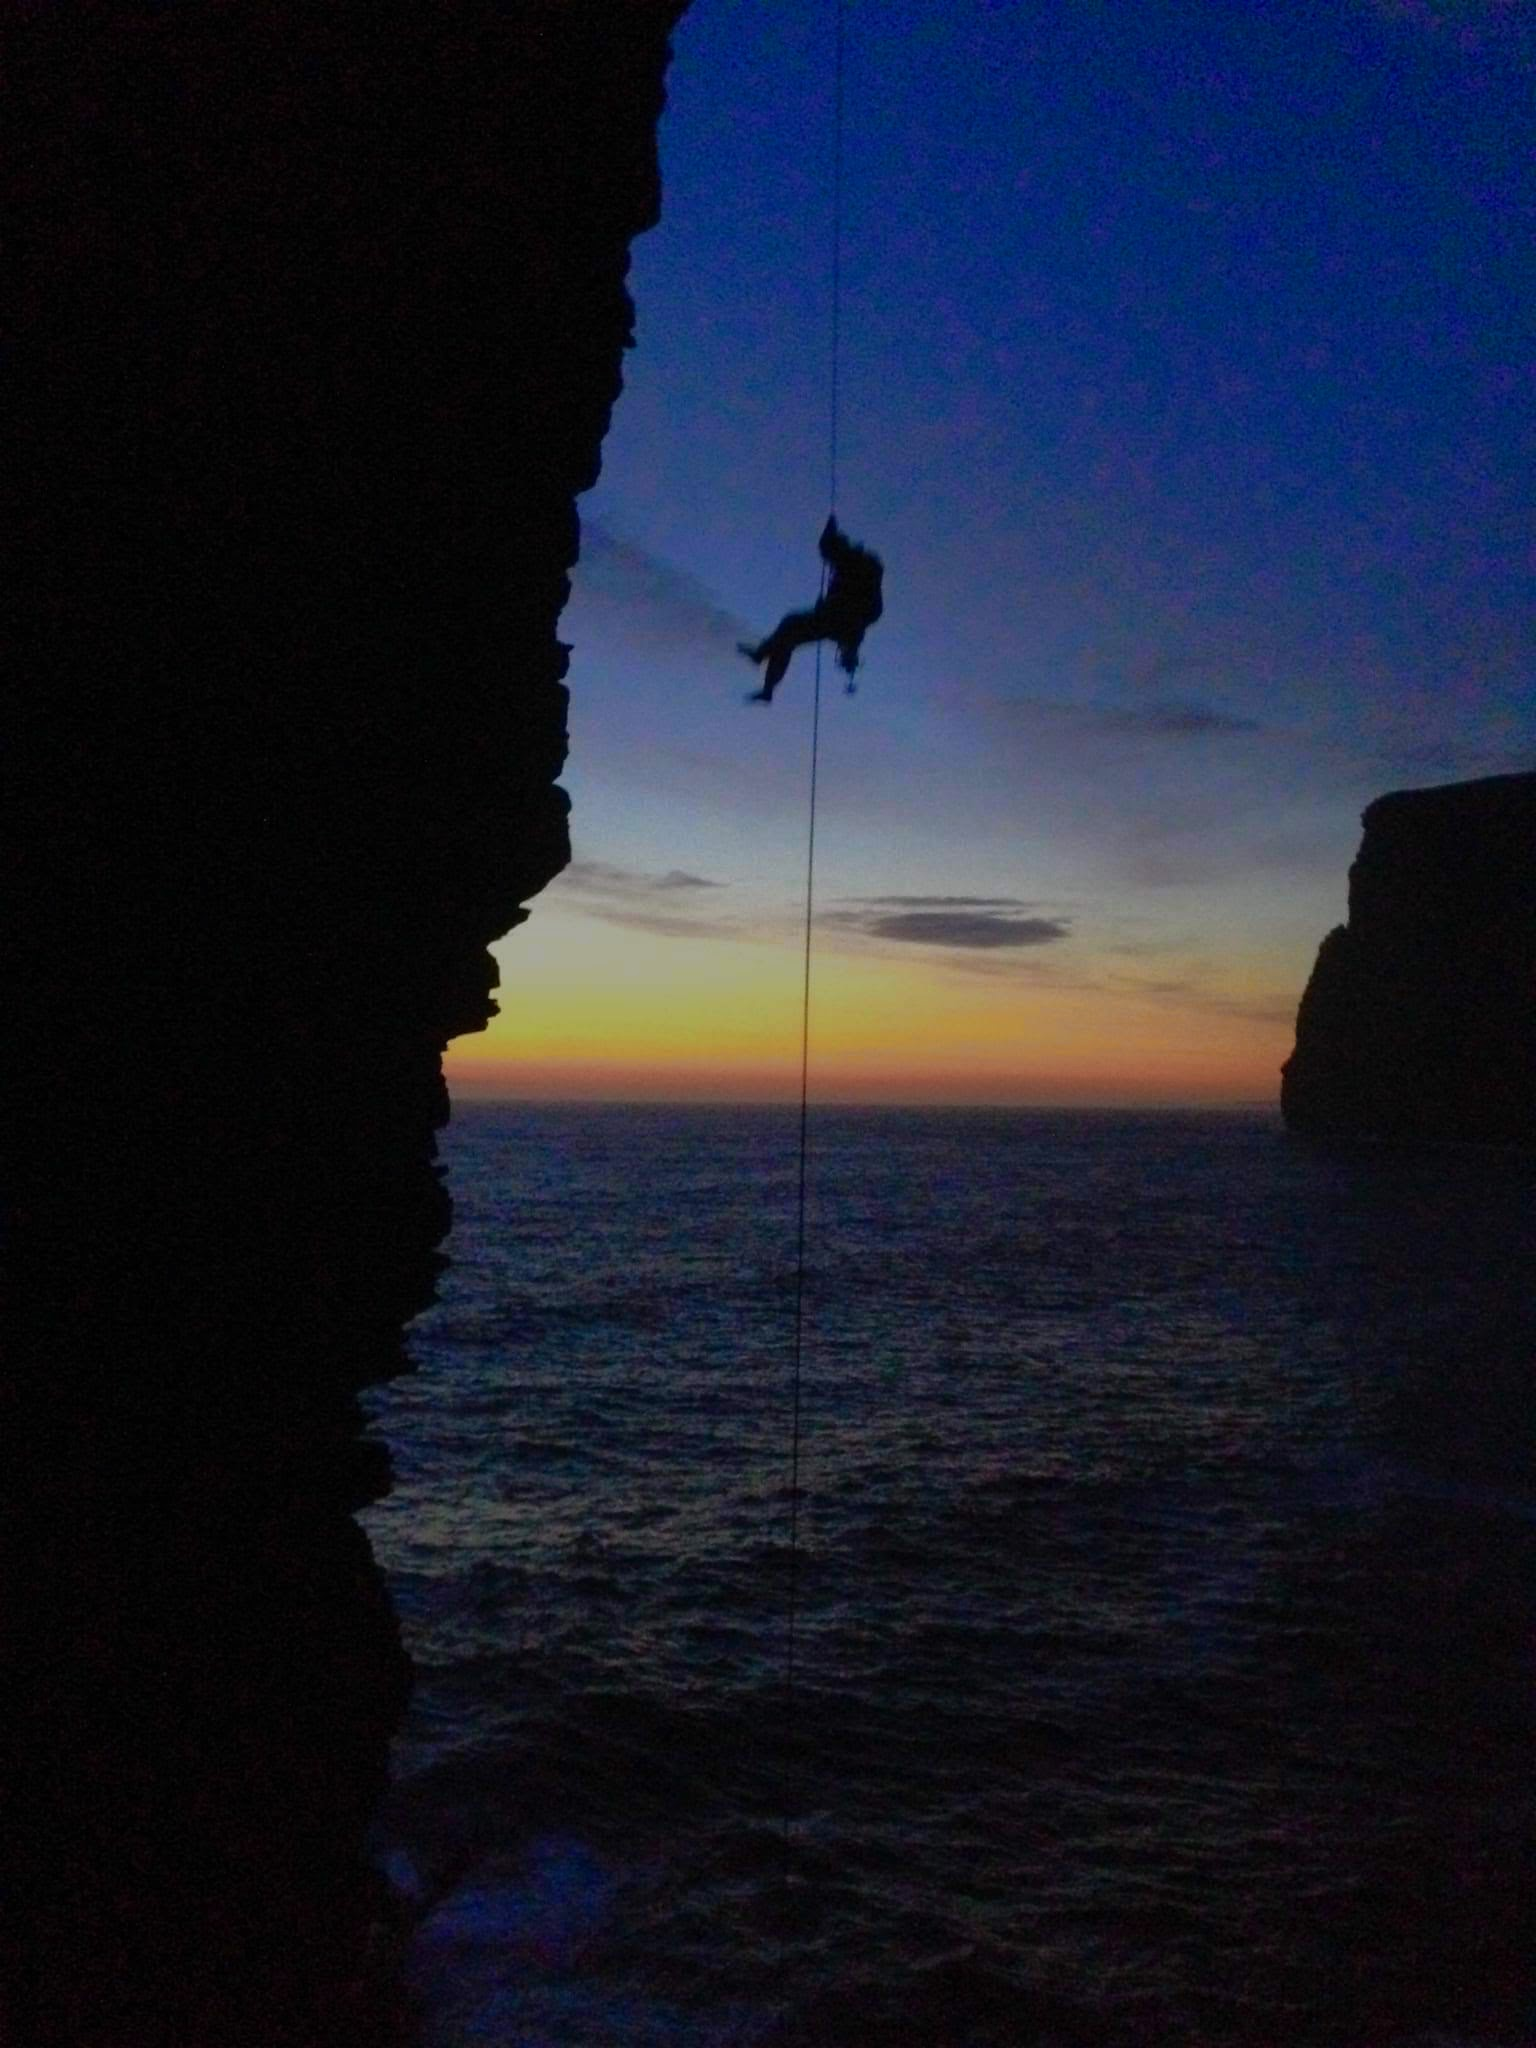 A picture of Jesse on the last free hanging abseil to get down to the base of the sea stack. The sun is setting and he and the stack are silhouetted in the foreground. It is very nearly dark.